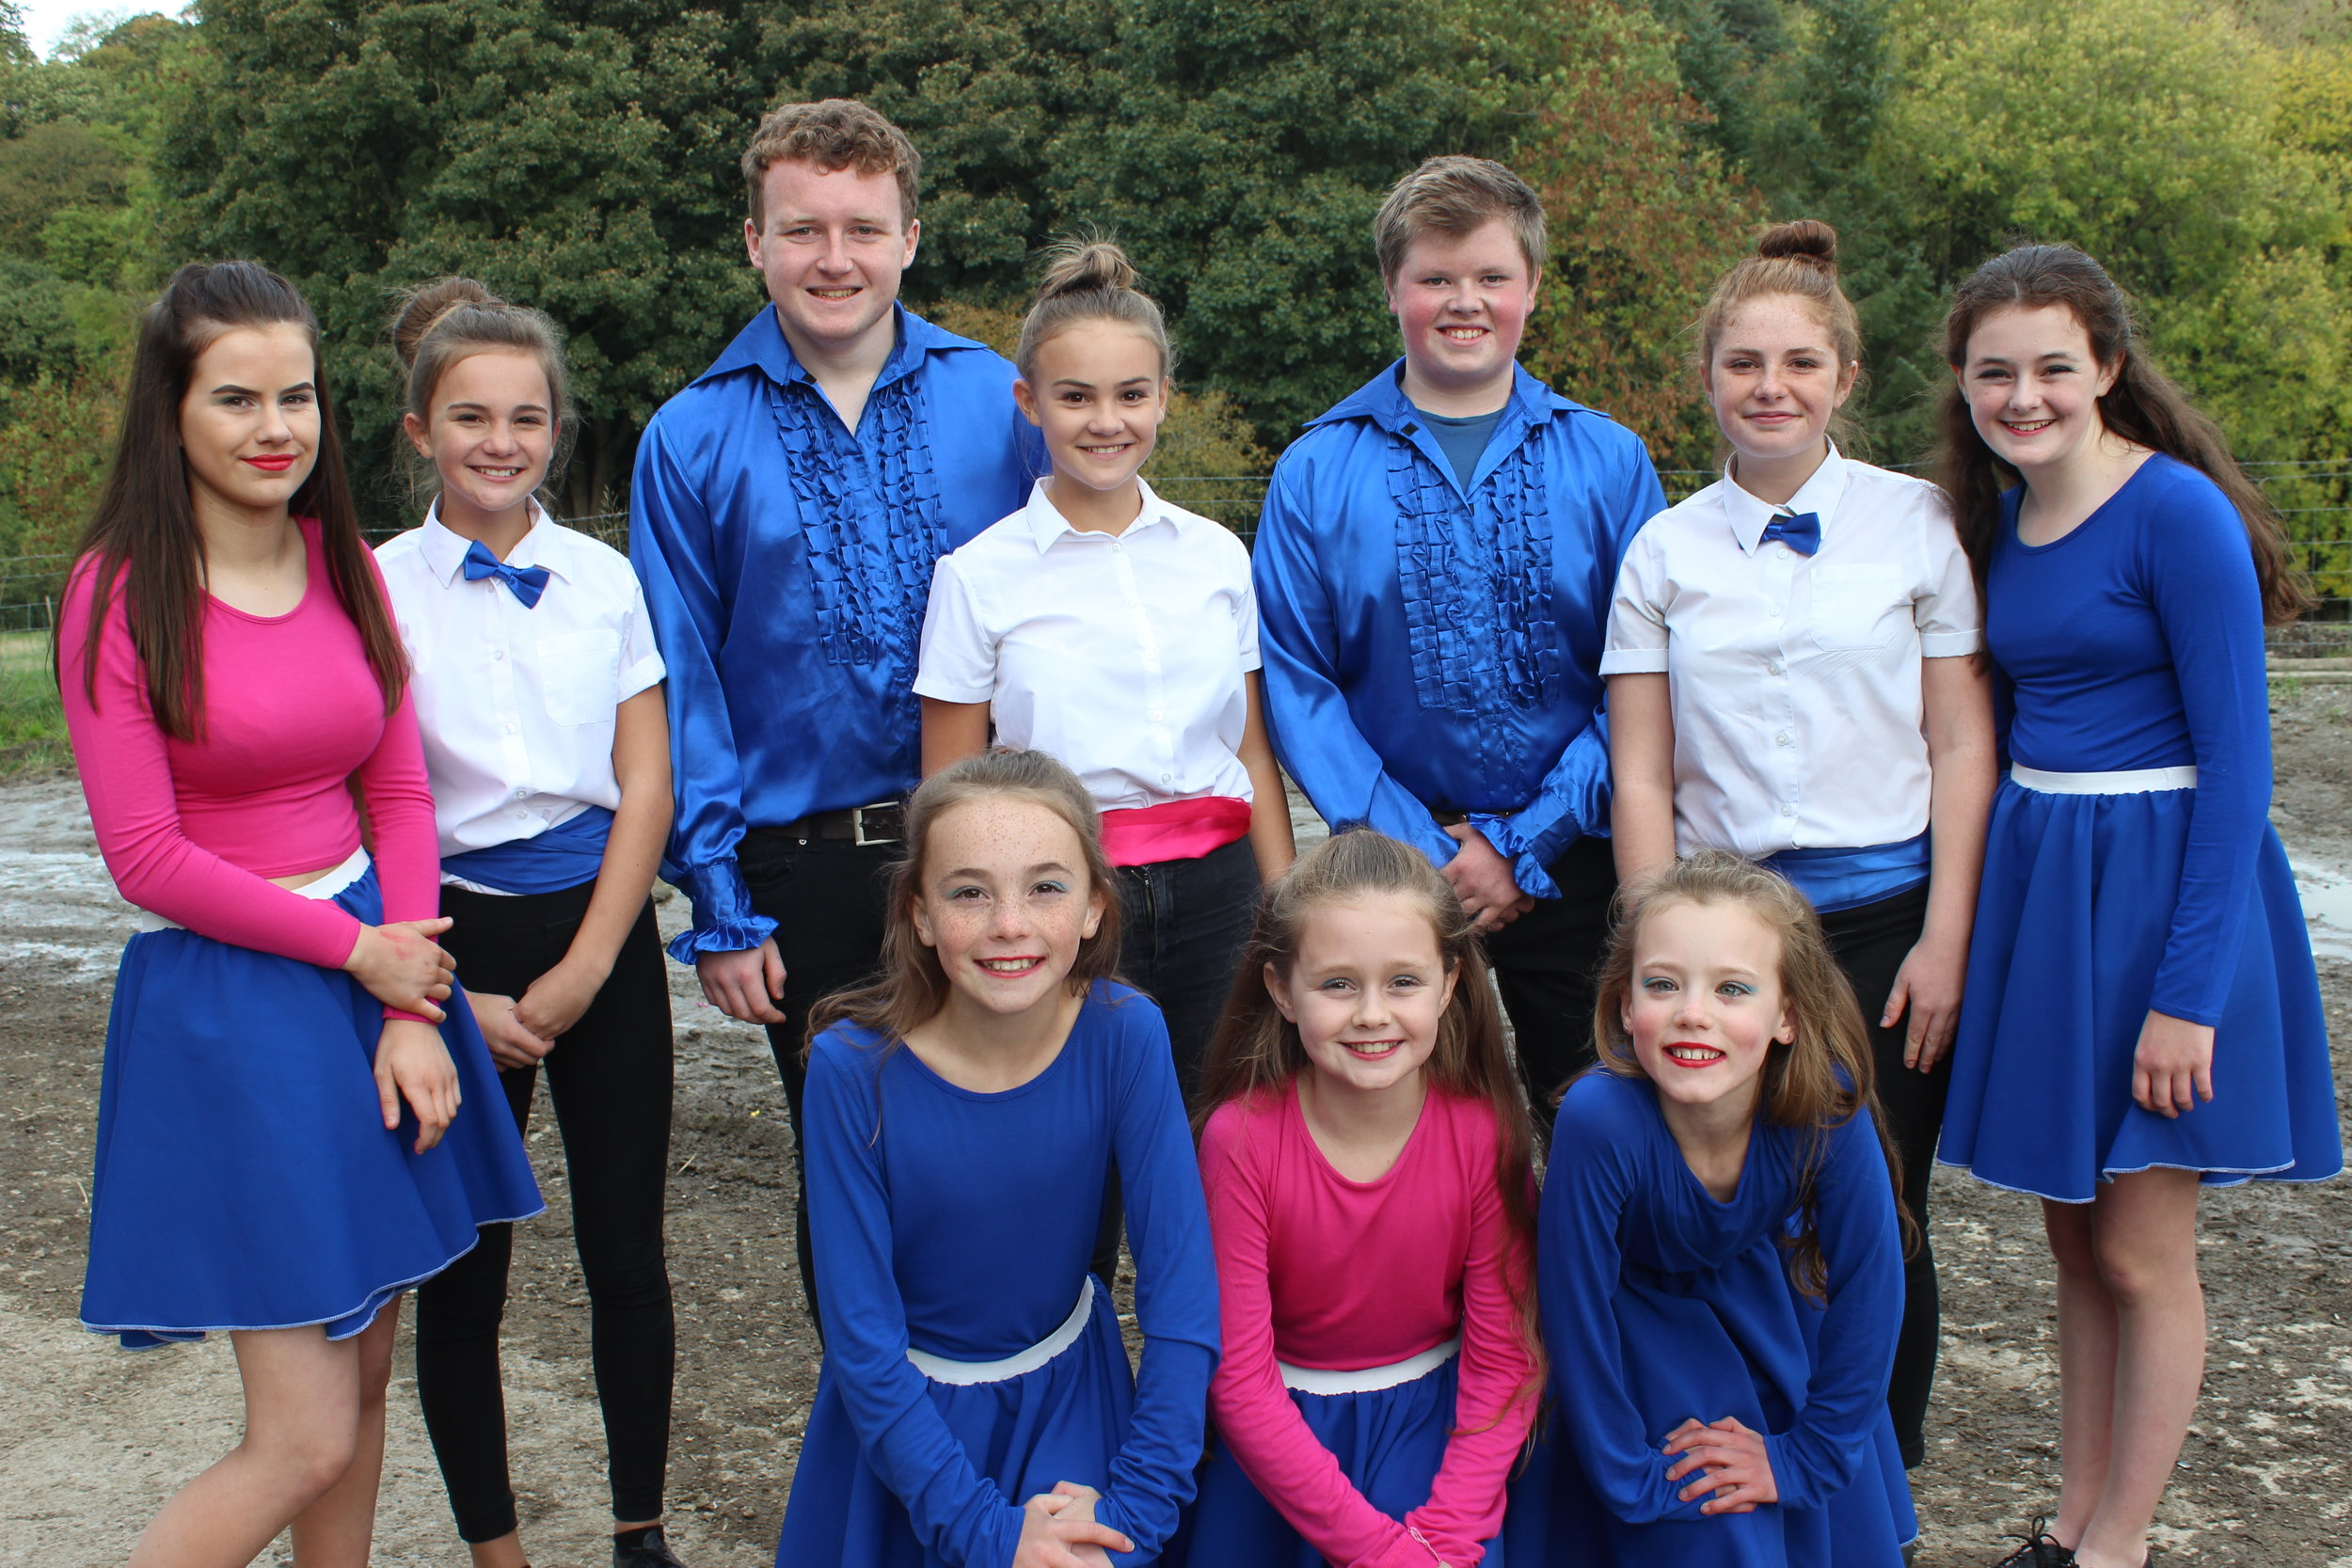 Edw Valley YFC, first place in the Ballroom Dancing competition.